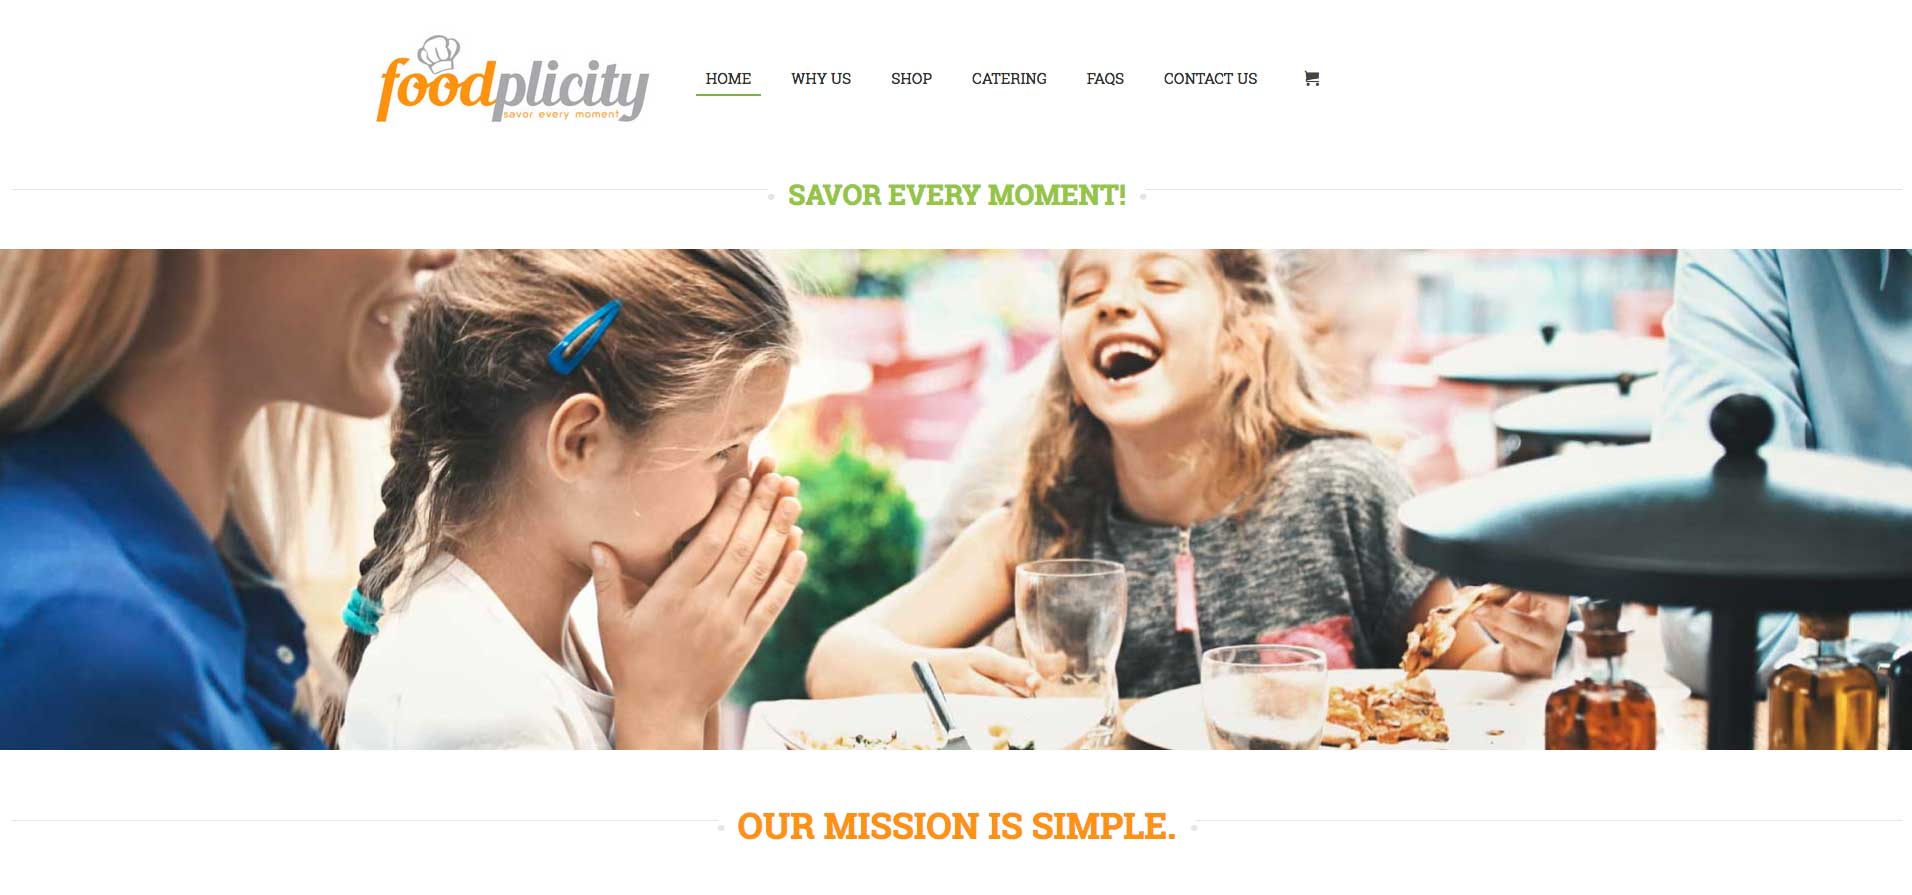 foodplicity website design